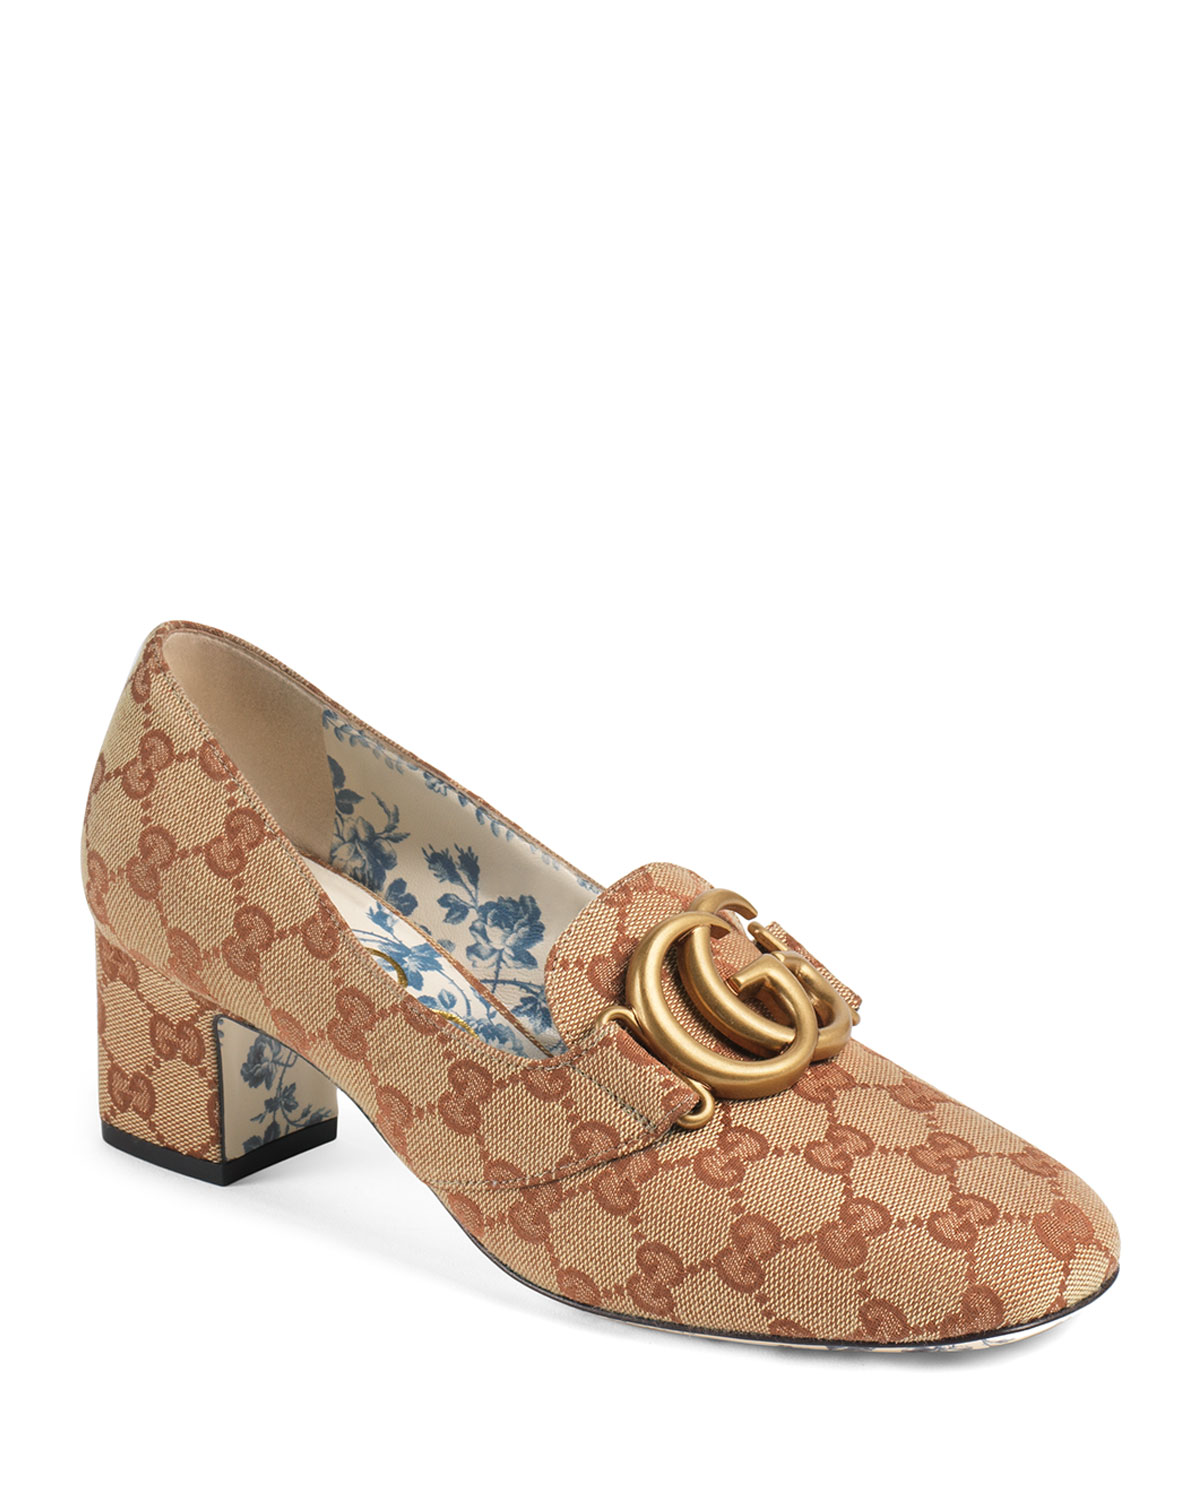 d21798603c0 Gucci Original GG Canvas Block-Heel Loafer Pumps